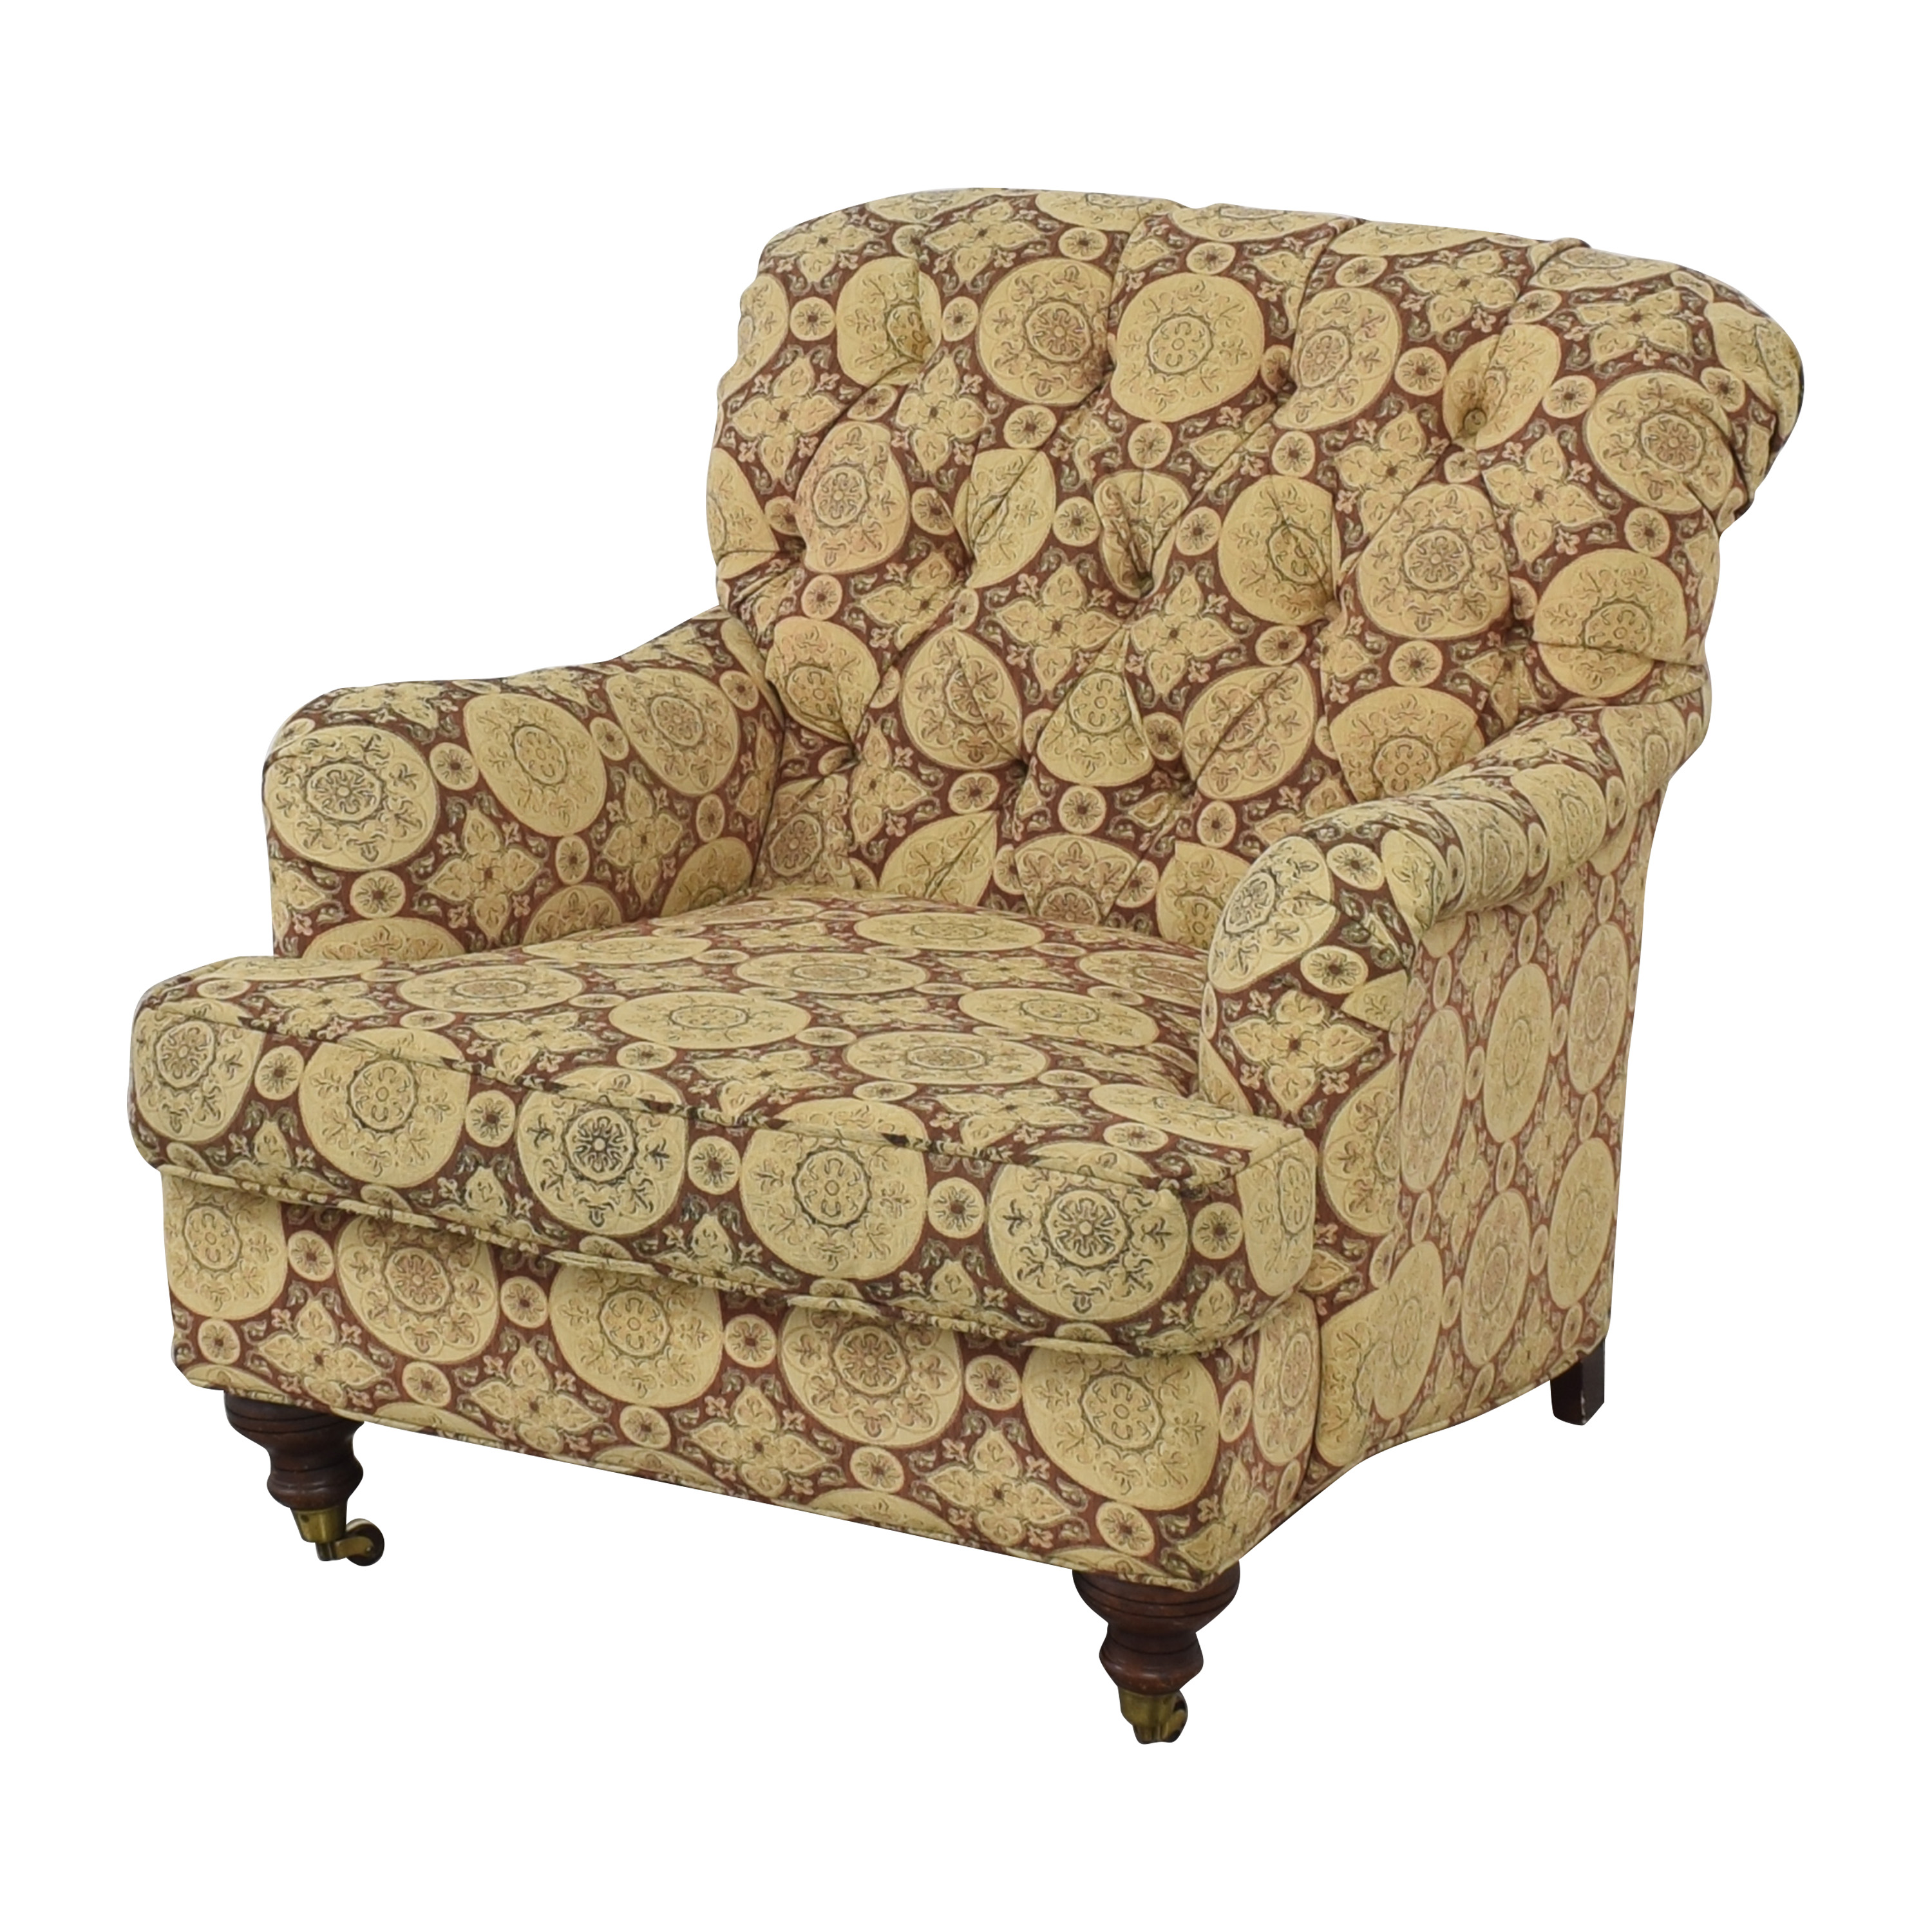 Lillian August Lillian August Upholstered Arm Chair for sale